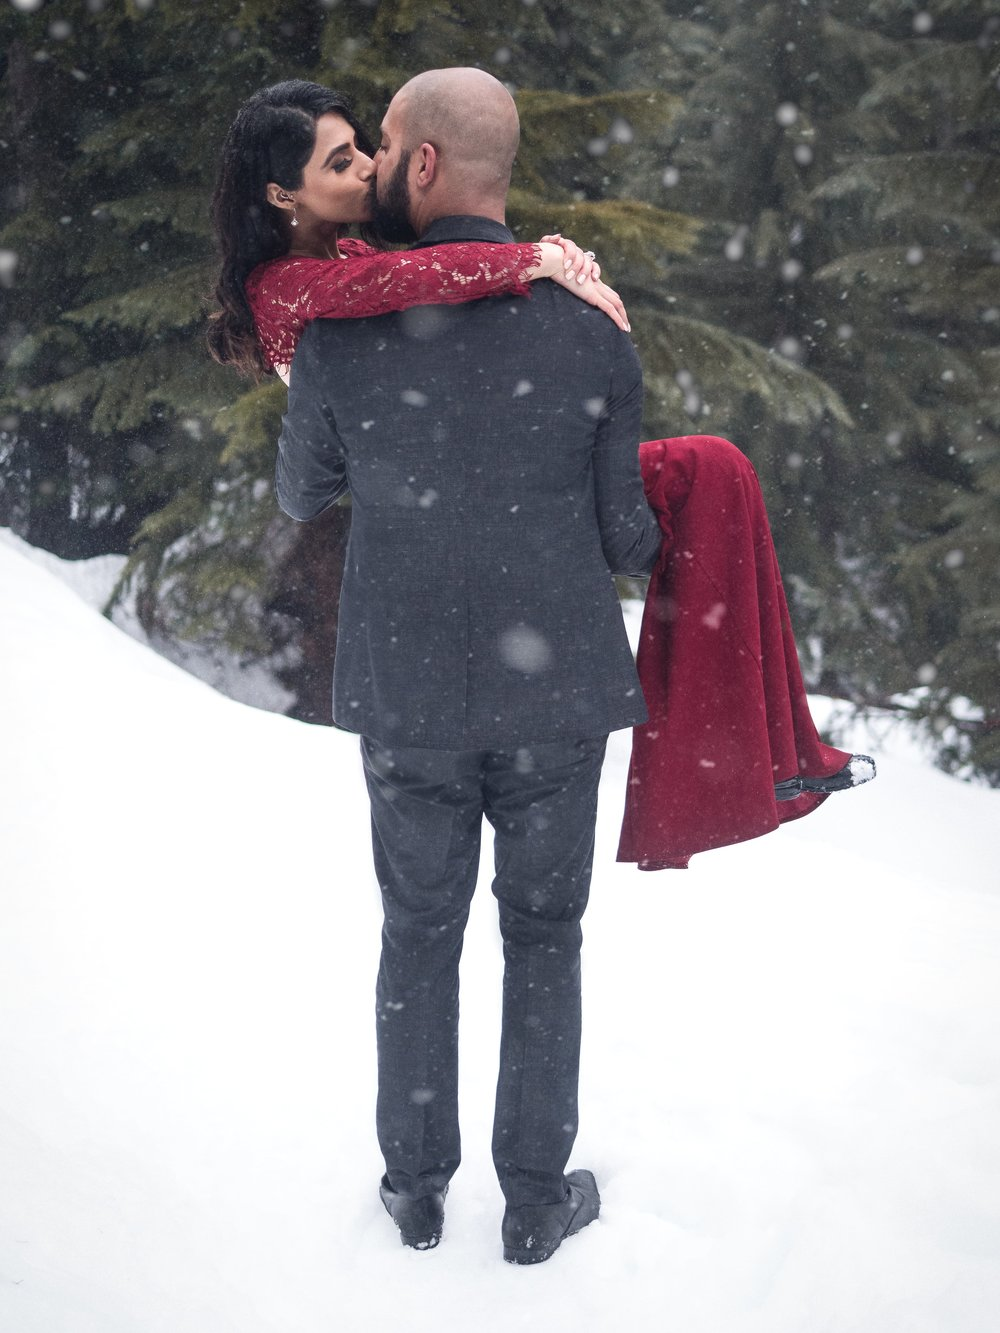 winter_Engagement_photography_vancouver_alex_bischoff.jpg